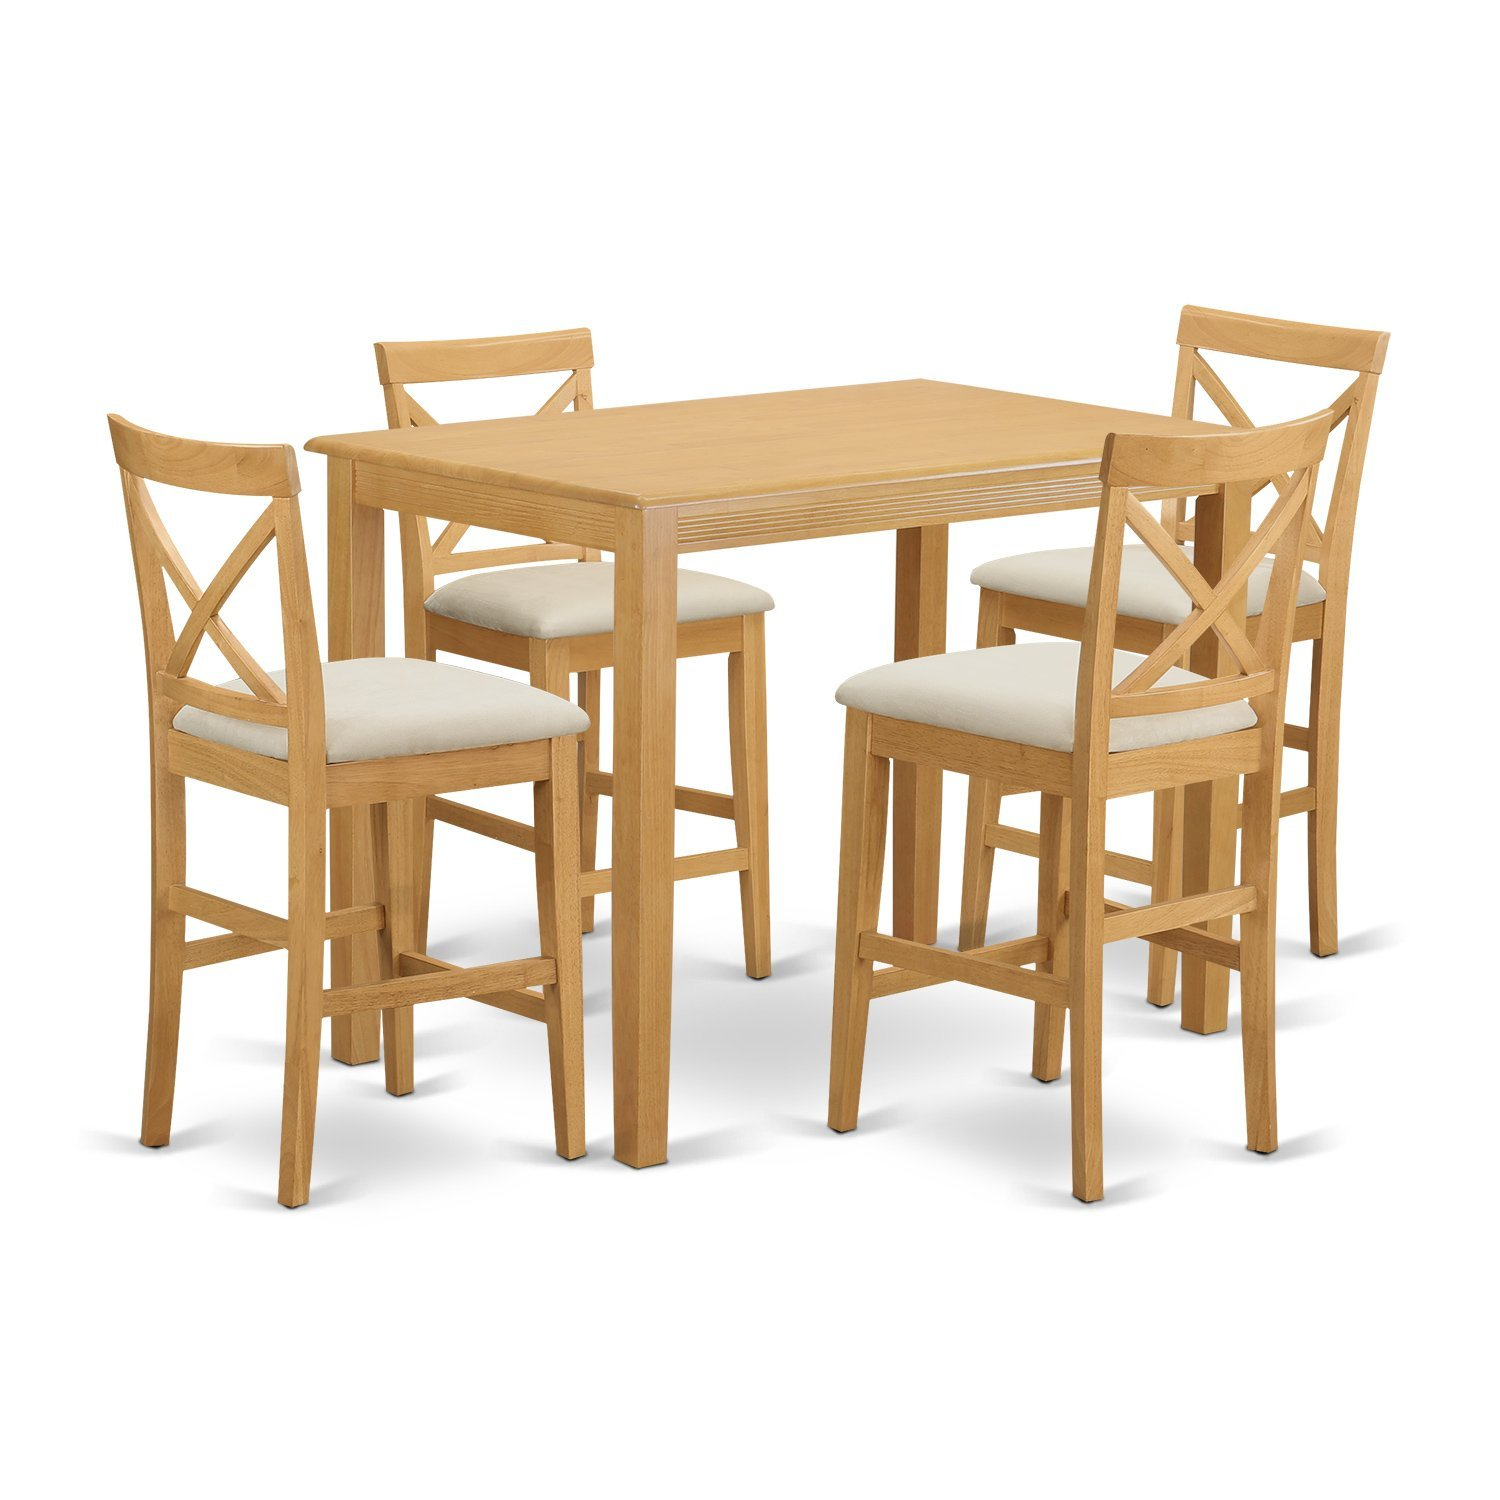 East West Furniture YAPB5-OAK-C 5 Piece High Top Table and 4 Chairs Set